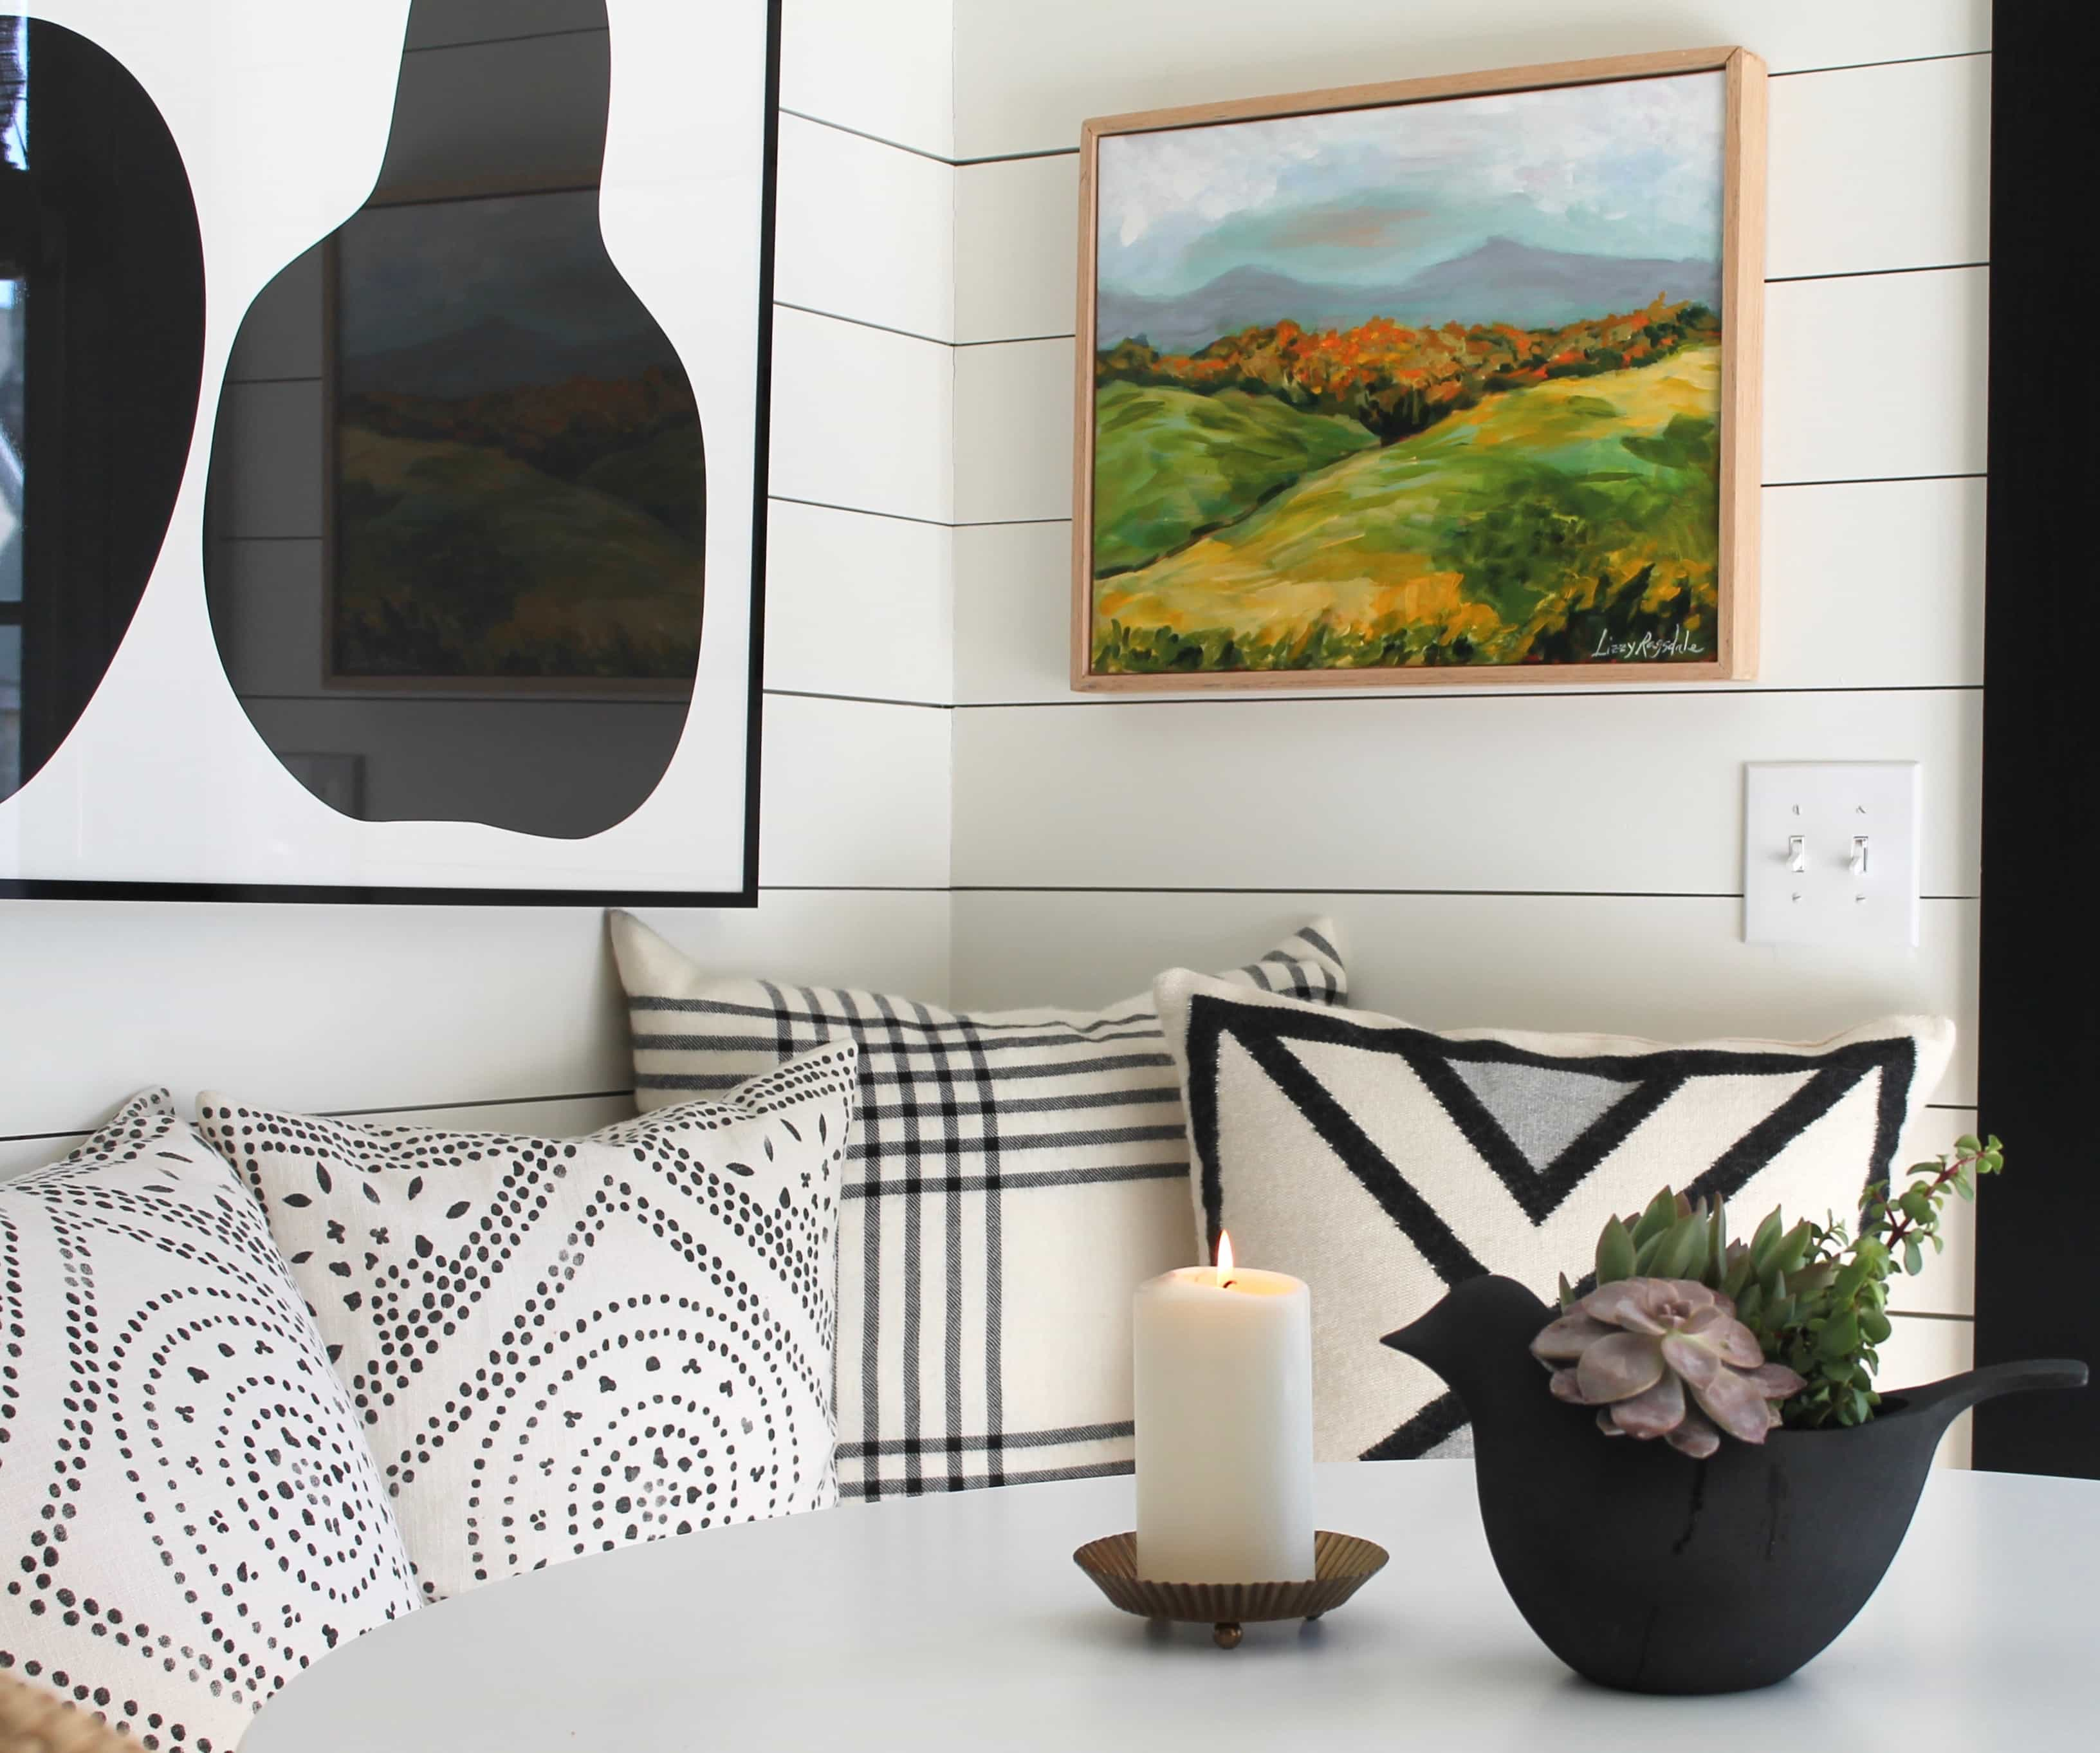 pillows, art, tabletop with planter